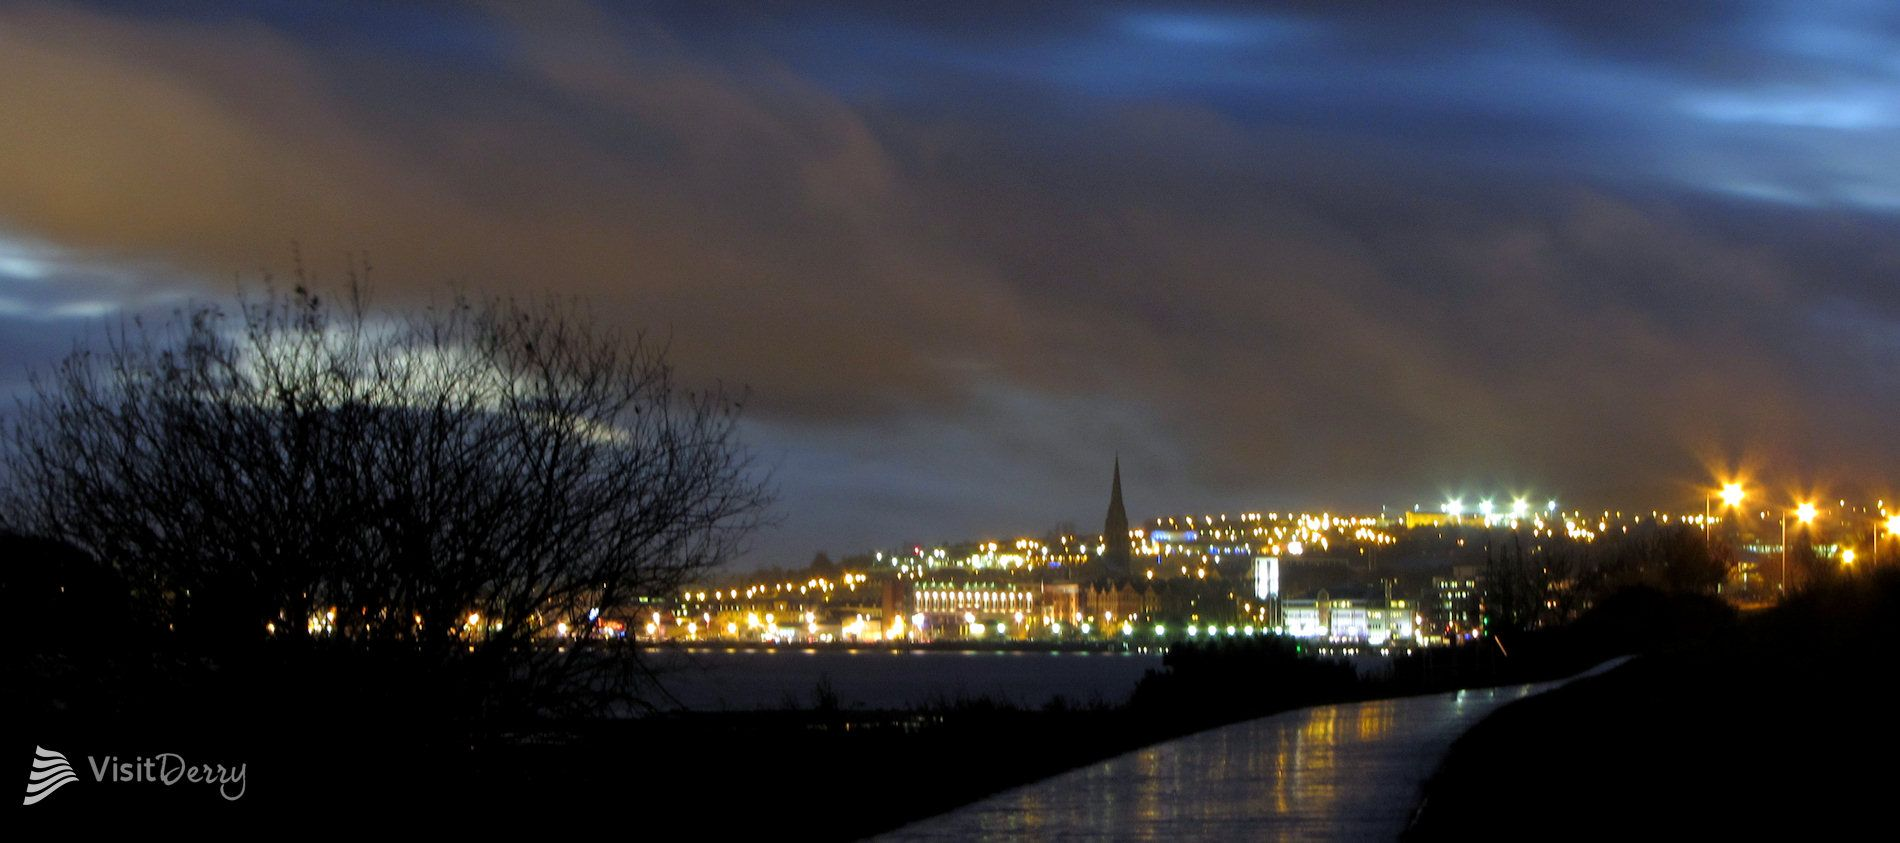 wedding venues in londonderry%0A Night sky over Derry